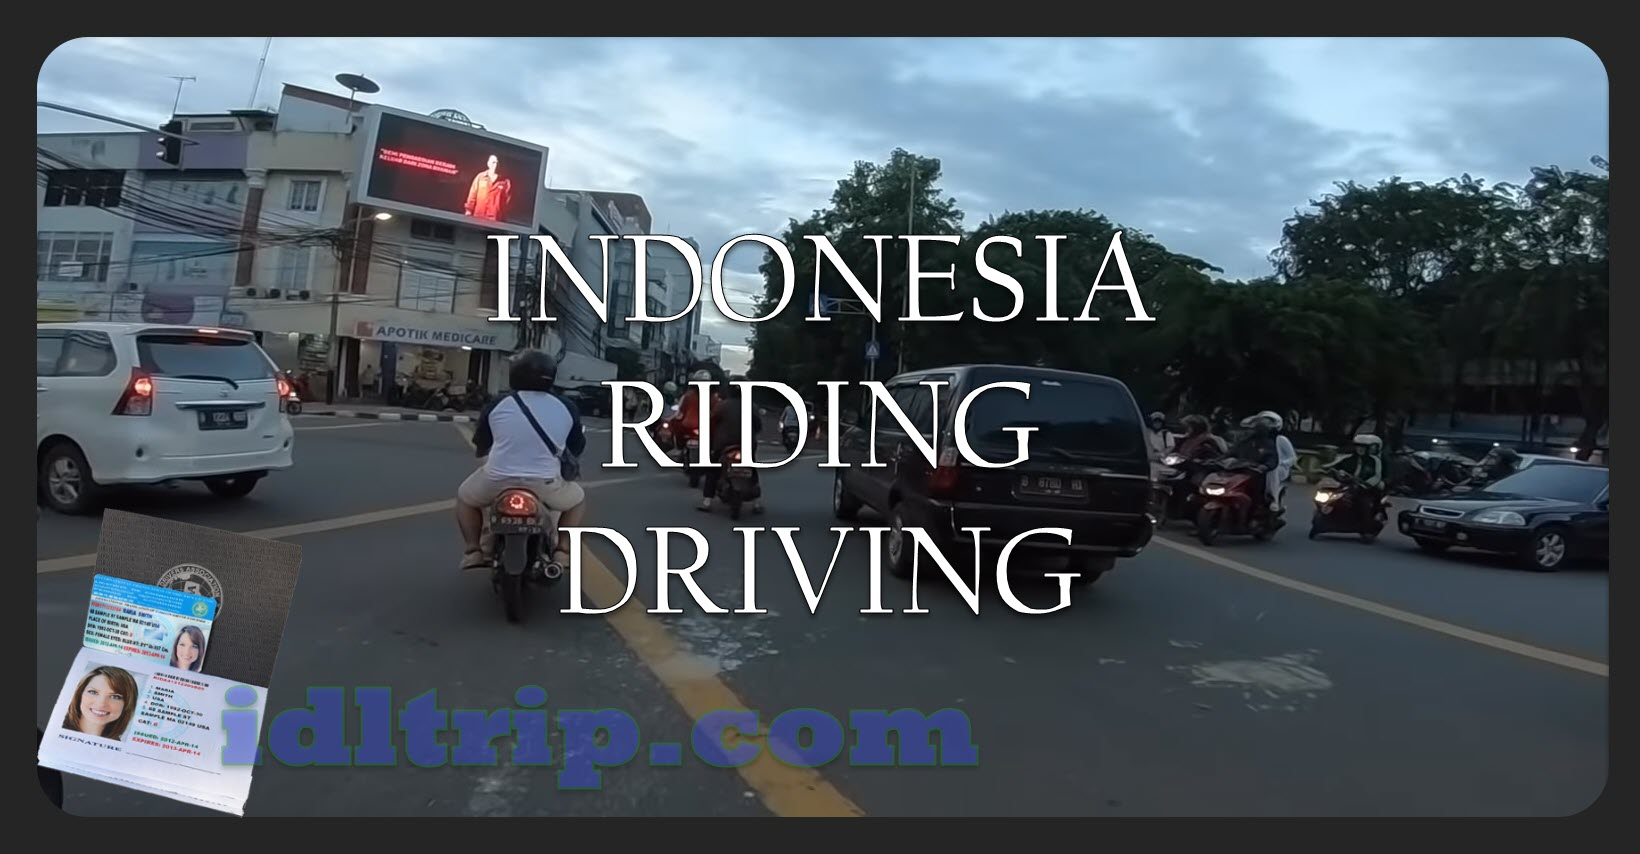 Indonisia riding and driving